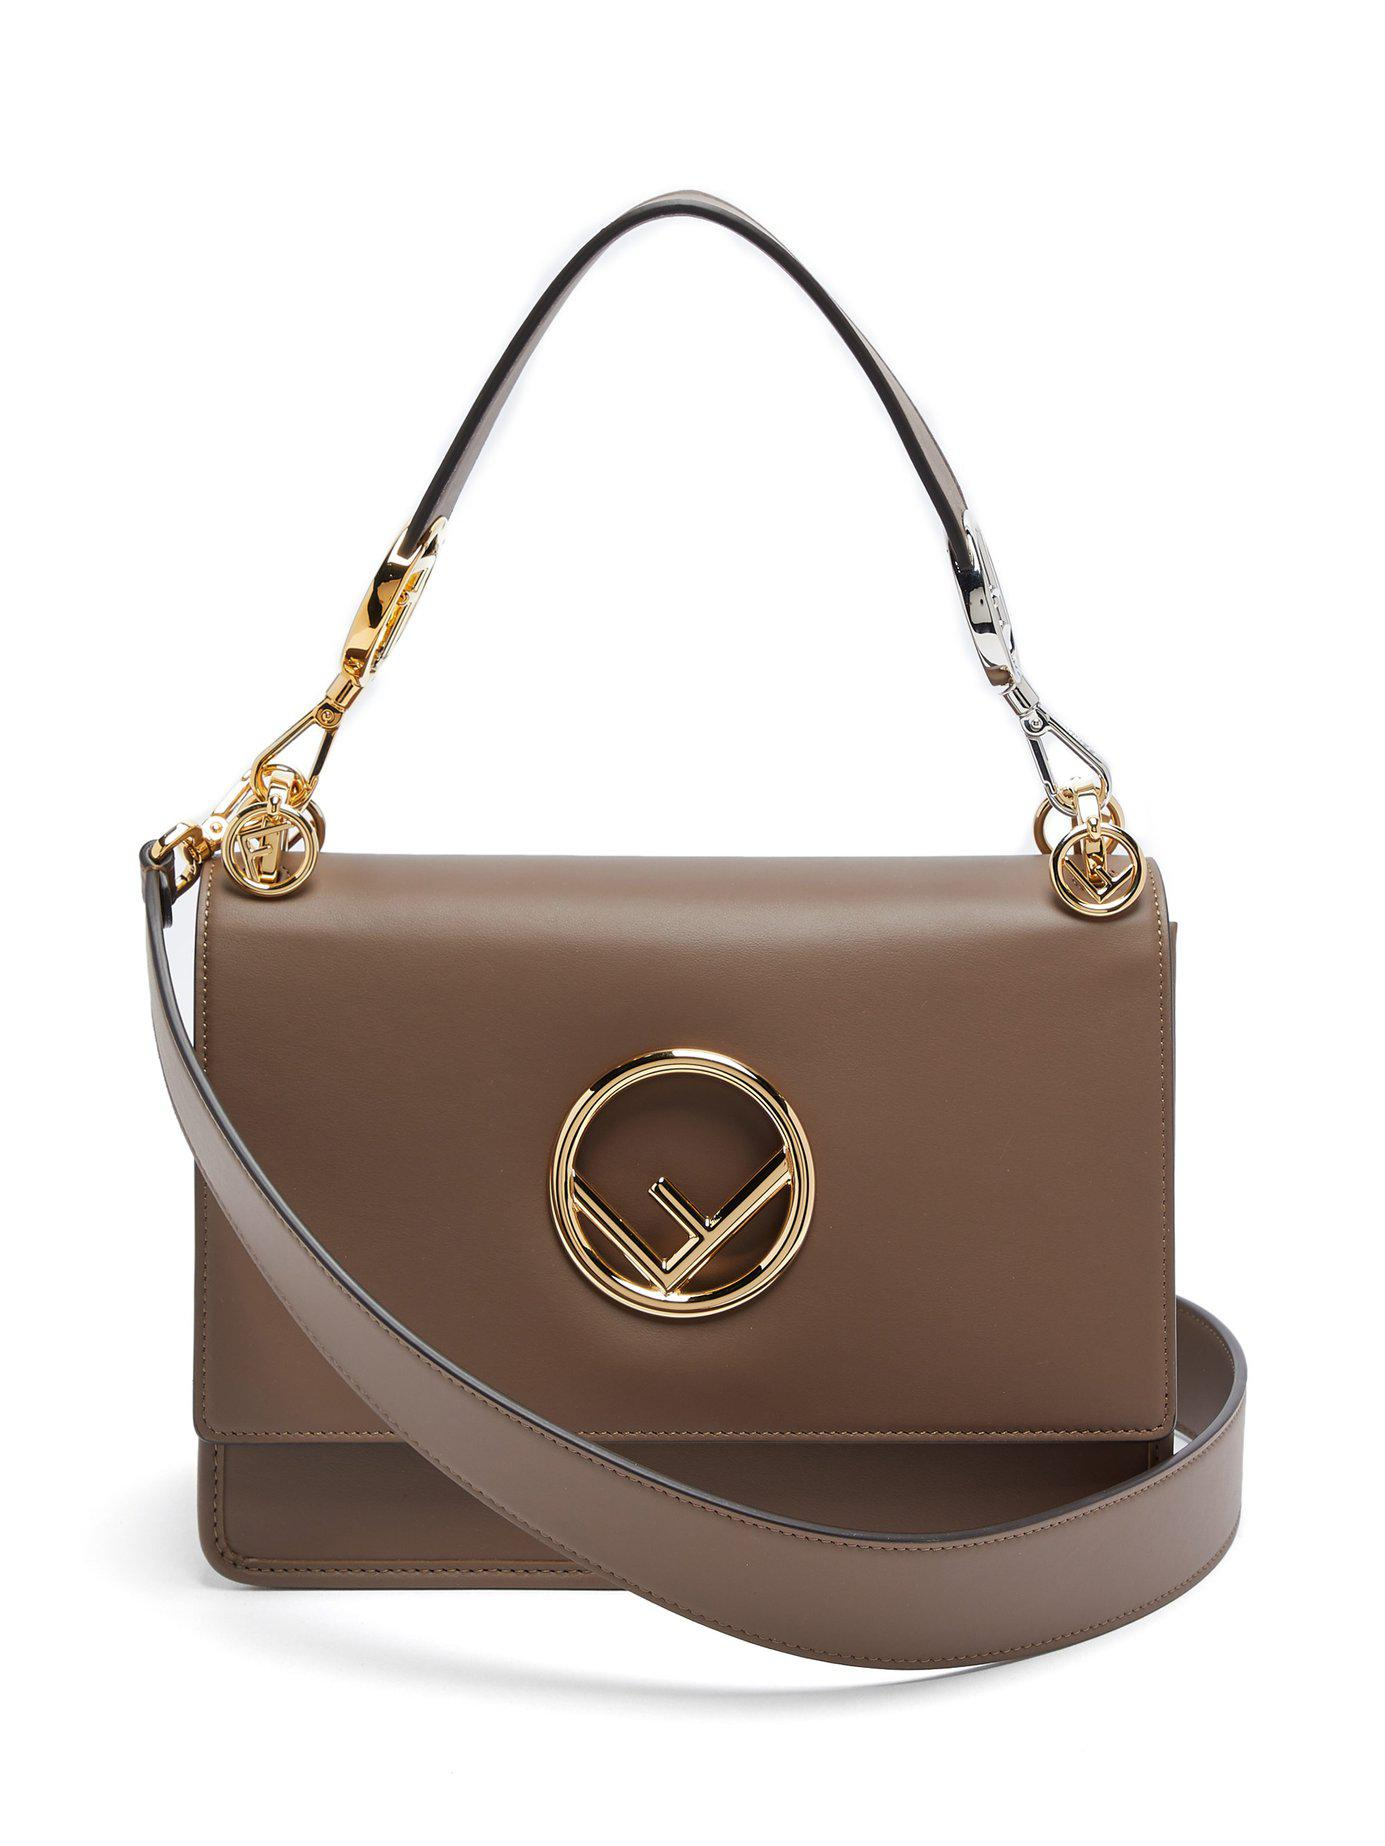 f14216caba1b Lyst - Fendi Kan I Small Leather Shoulder Bag in Brown